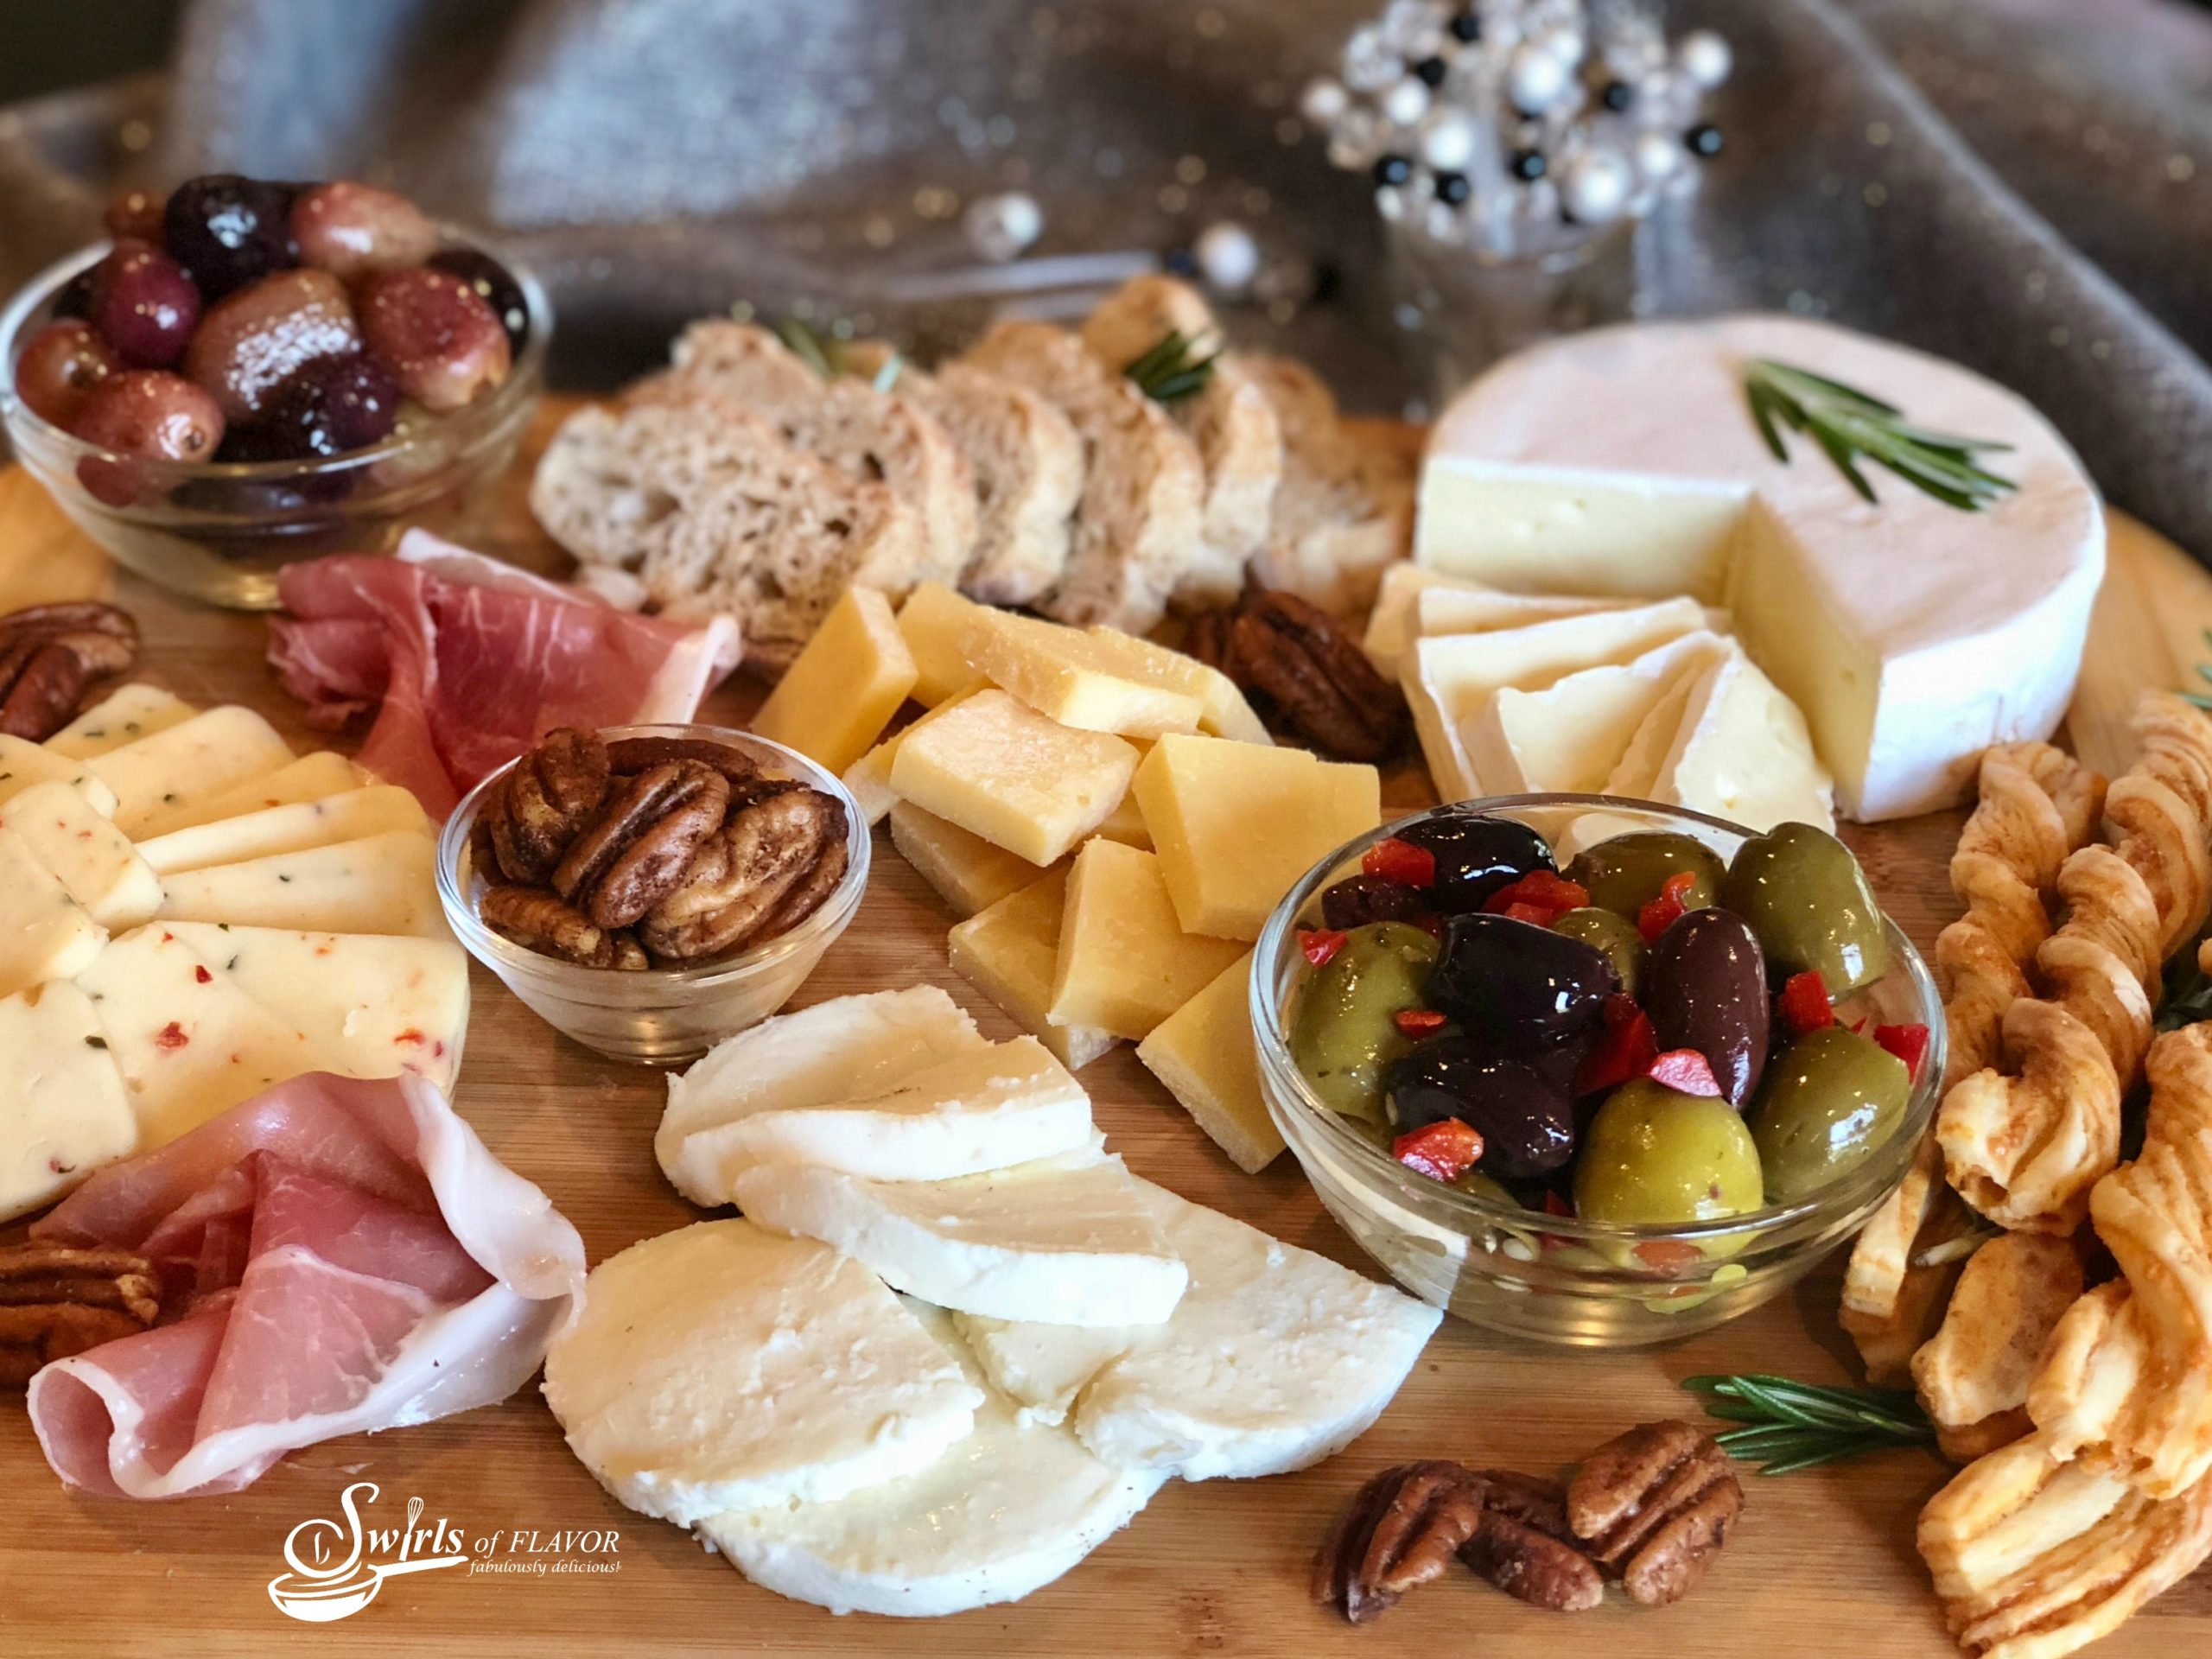 A Holiday Cheese Board is an impressive appetizer or even a dessert when it's filled with assorted cheeses, ciabiatta bread, mixed olives, roasted grapes and spiced pecans. Easy to assemble, Our Holiday Cheese Board will be the center piece of your table with it's unexpected Balsamic Roasted Grapes and Buttery Spiced Pecans!#cheeseboard #holiday #entertaining #roastedgraped #spicedpecans #cheese #newyearseve #christmas #easyrecipe #swirlsofflavor